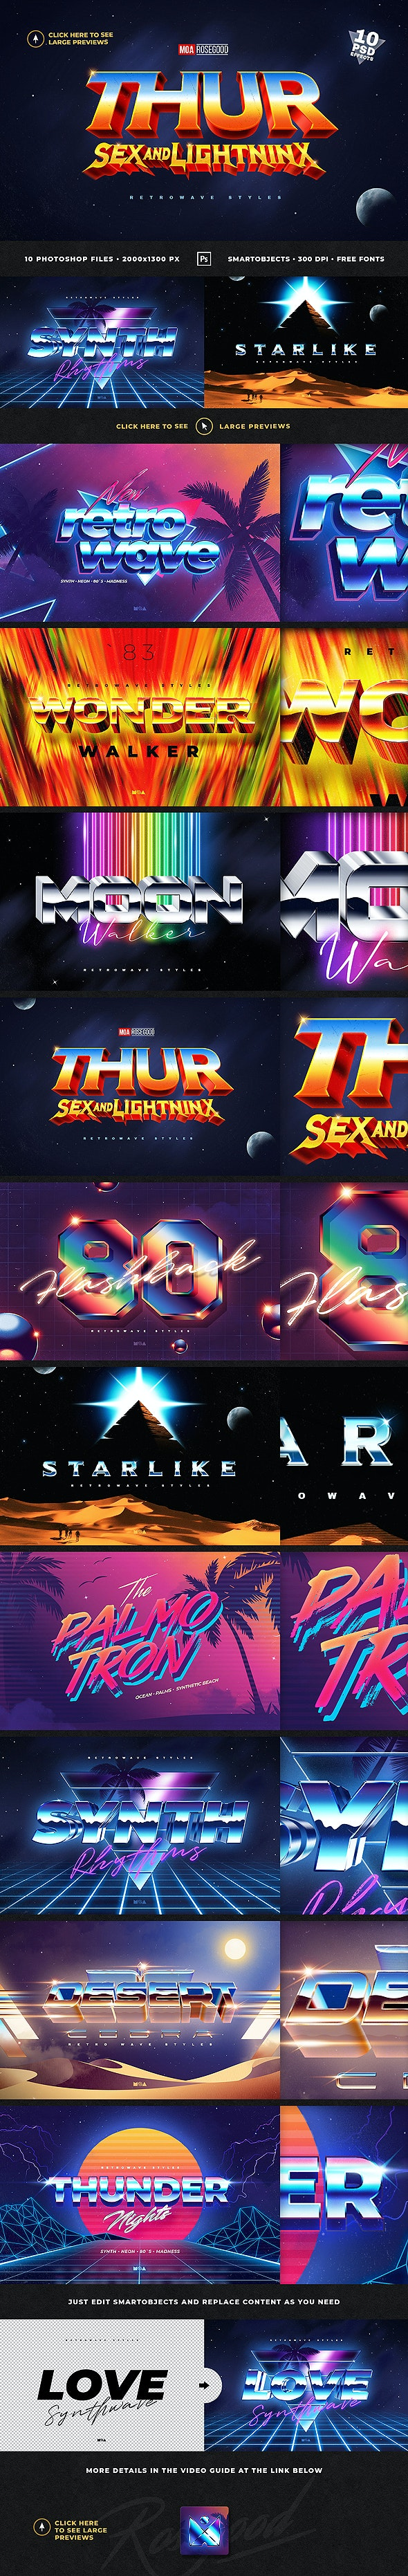 80s Retro Text Effects Retrowave Synthwave - Photo Effects Actions